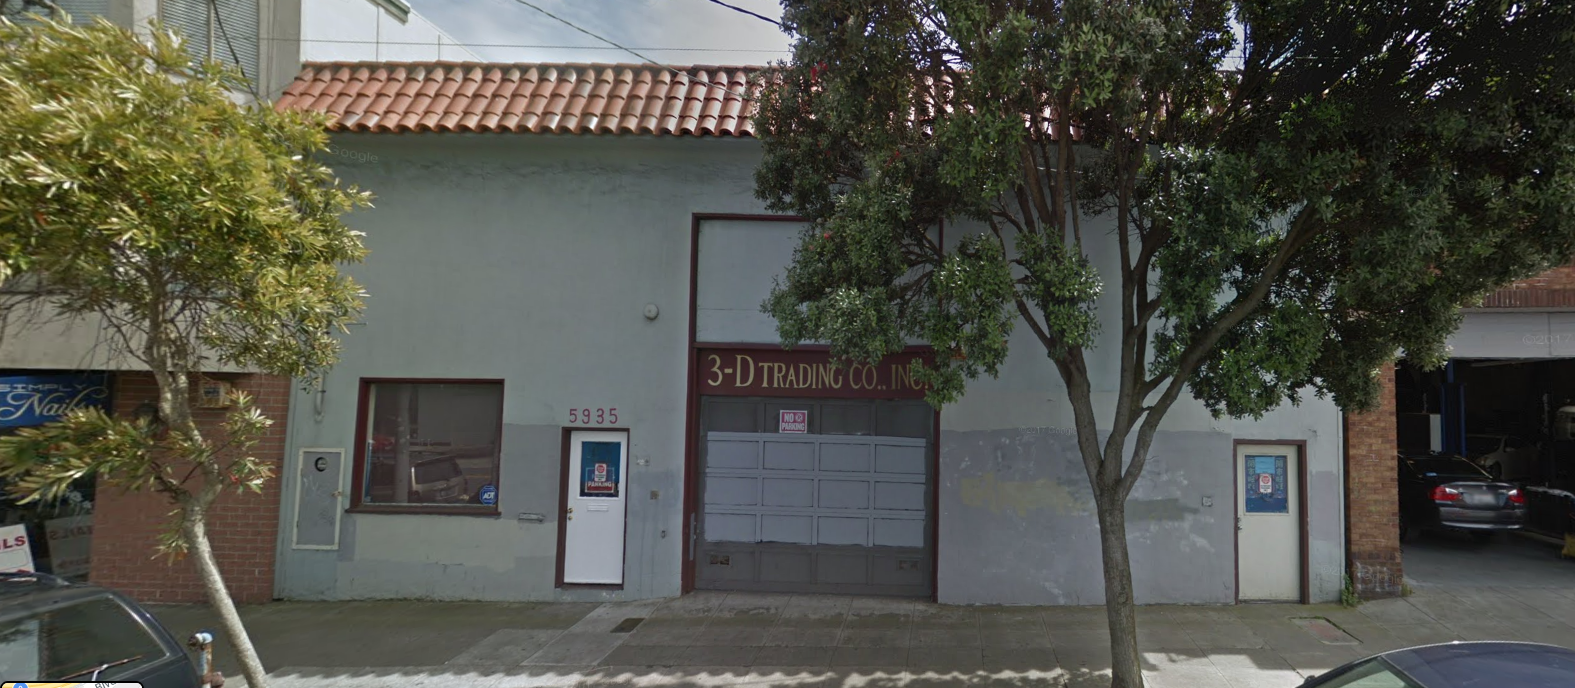 5935 Mission Street (Street View).png